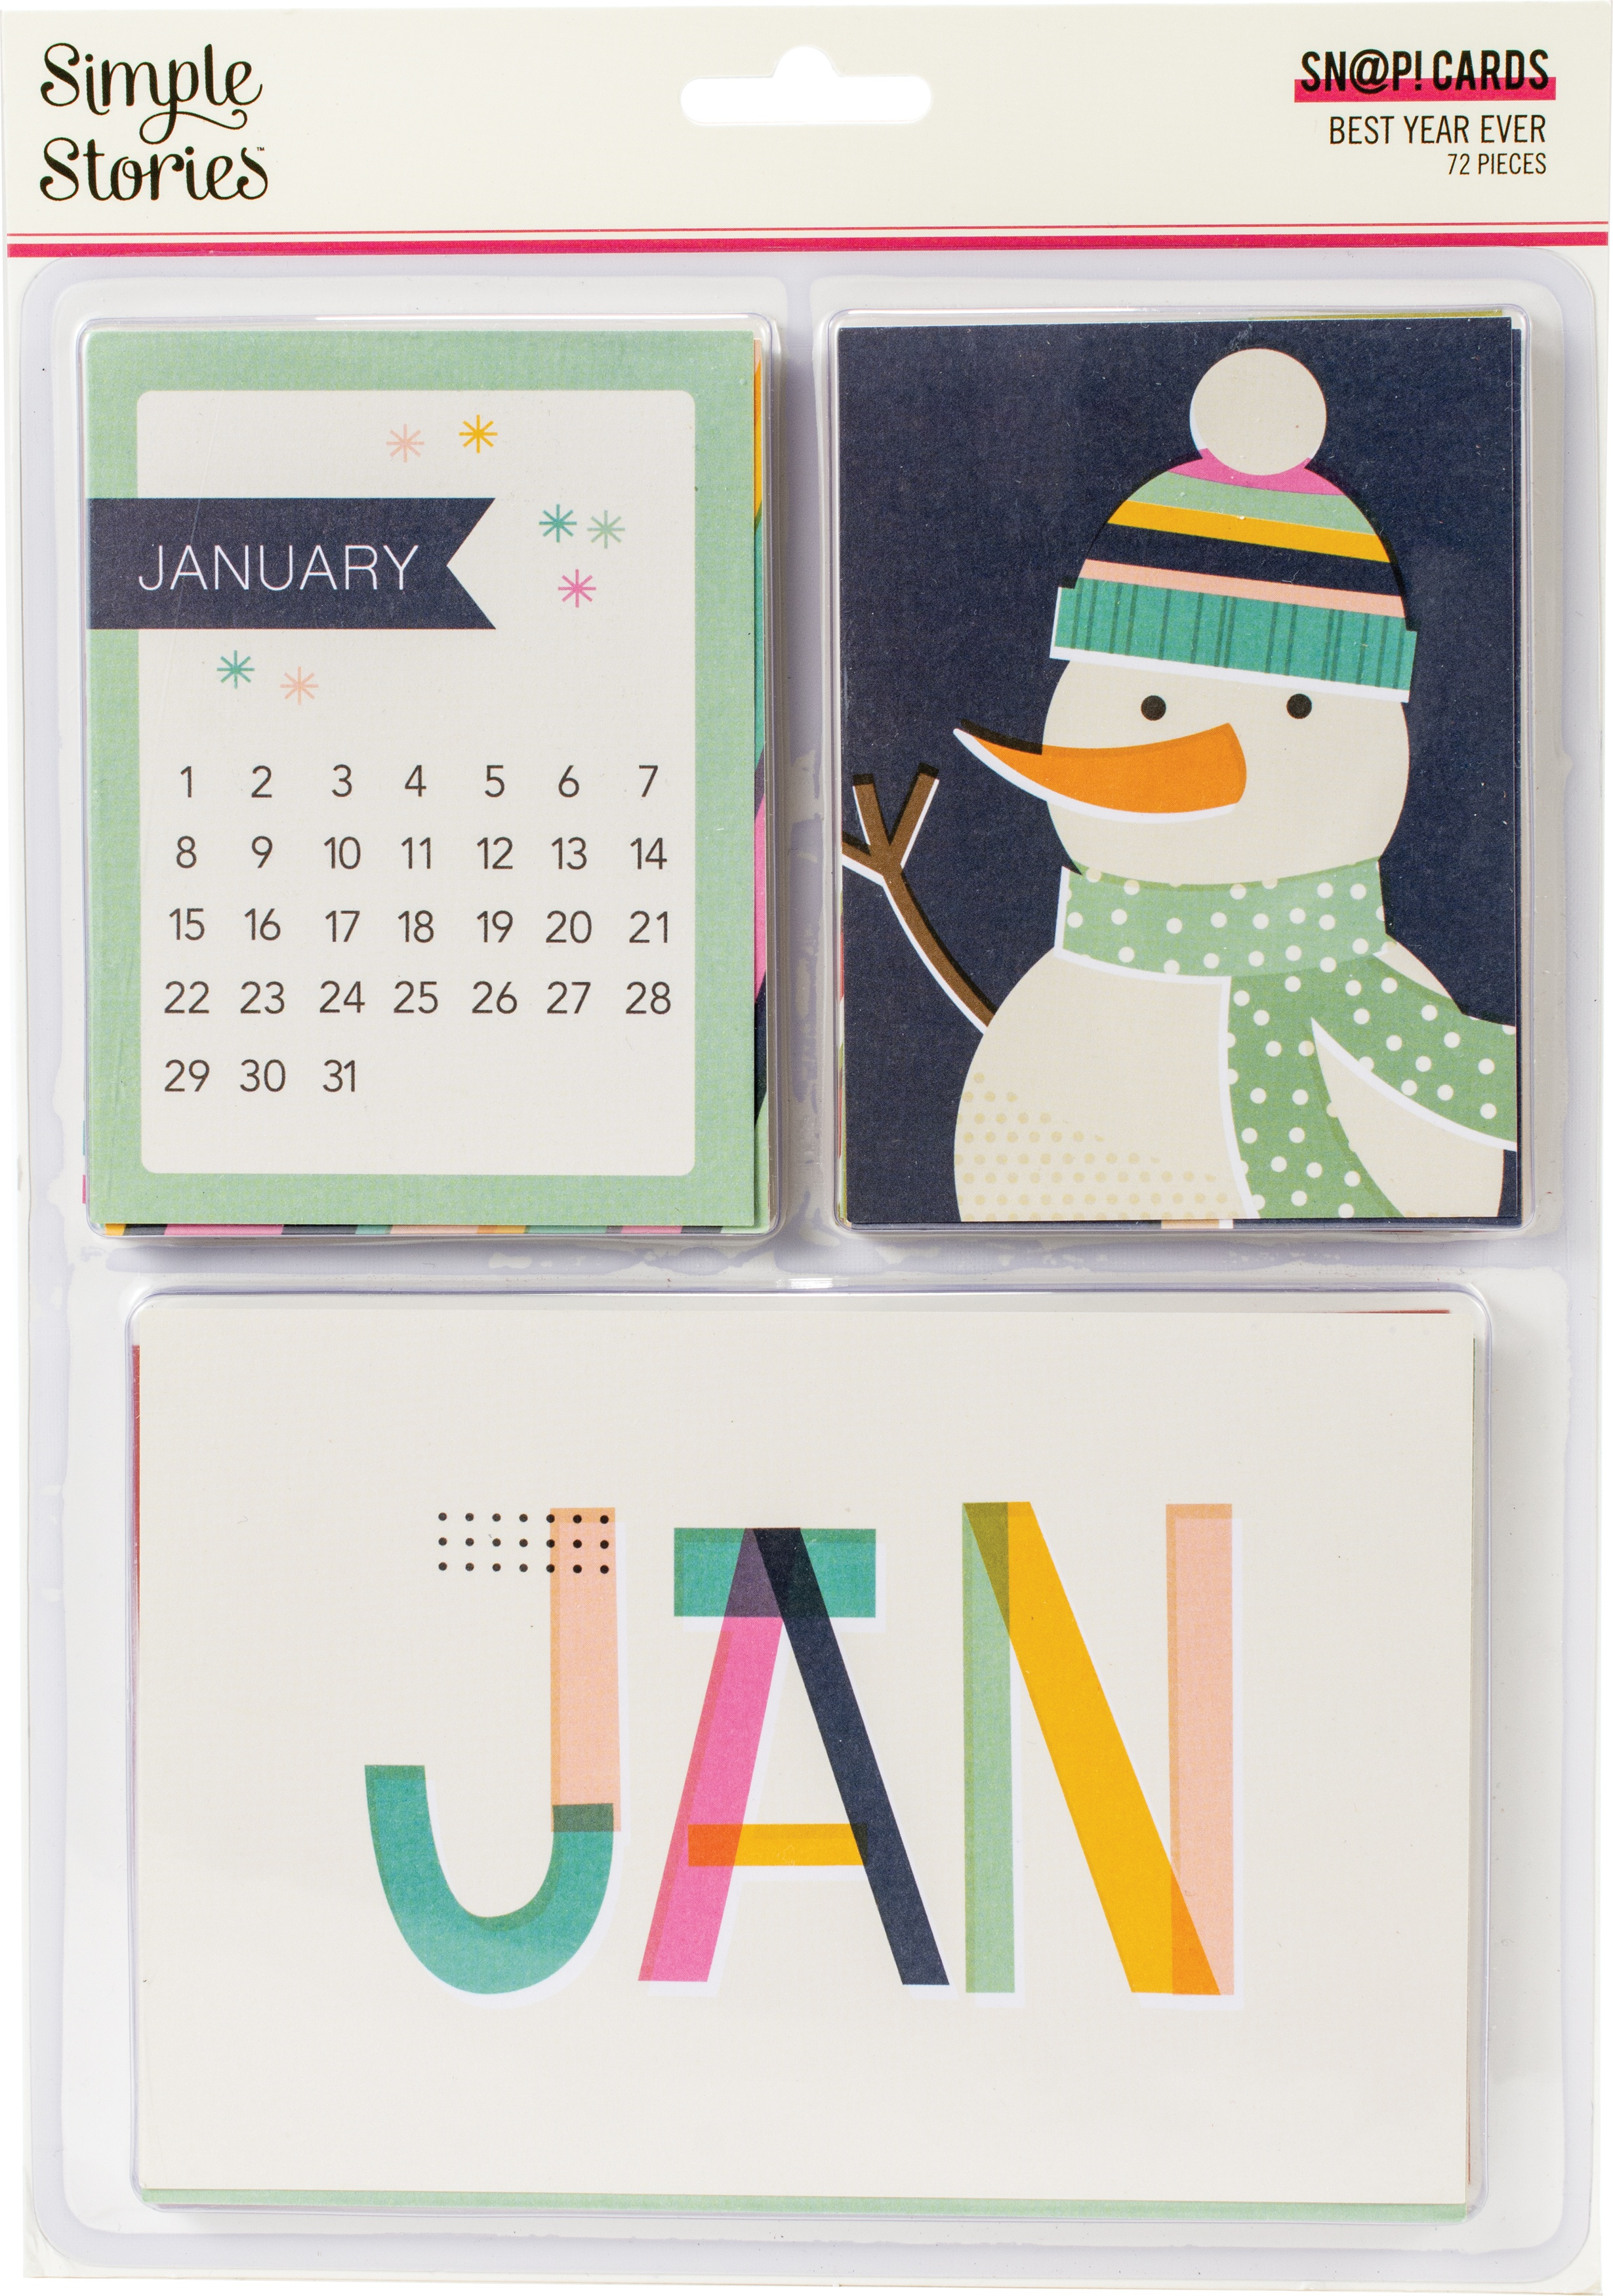 Simple Stories Sn@p! Card Pack 72/Pkg-Best Year Ever